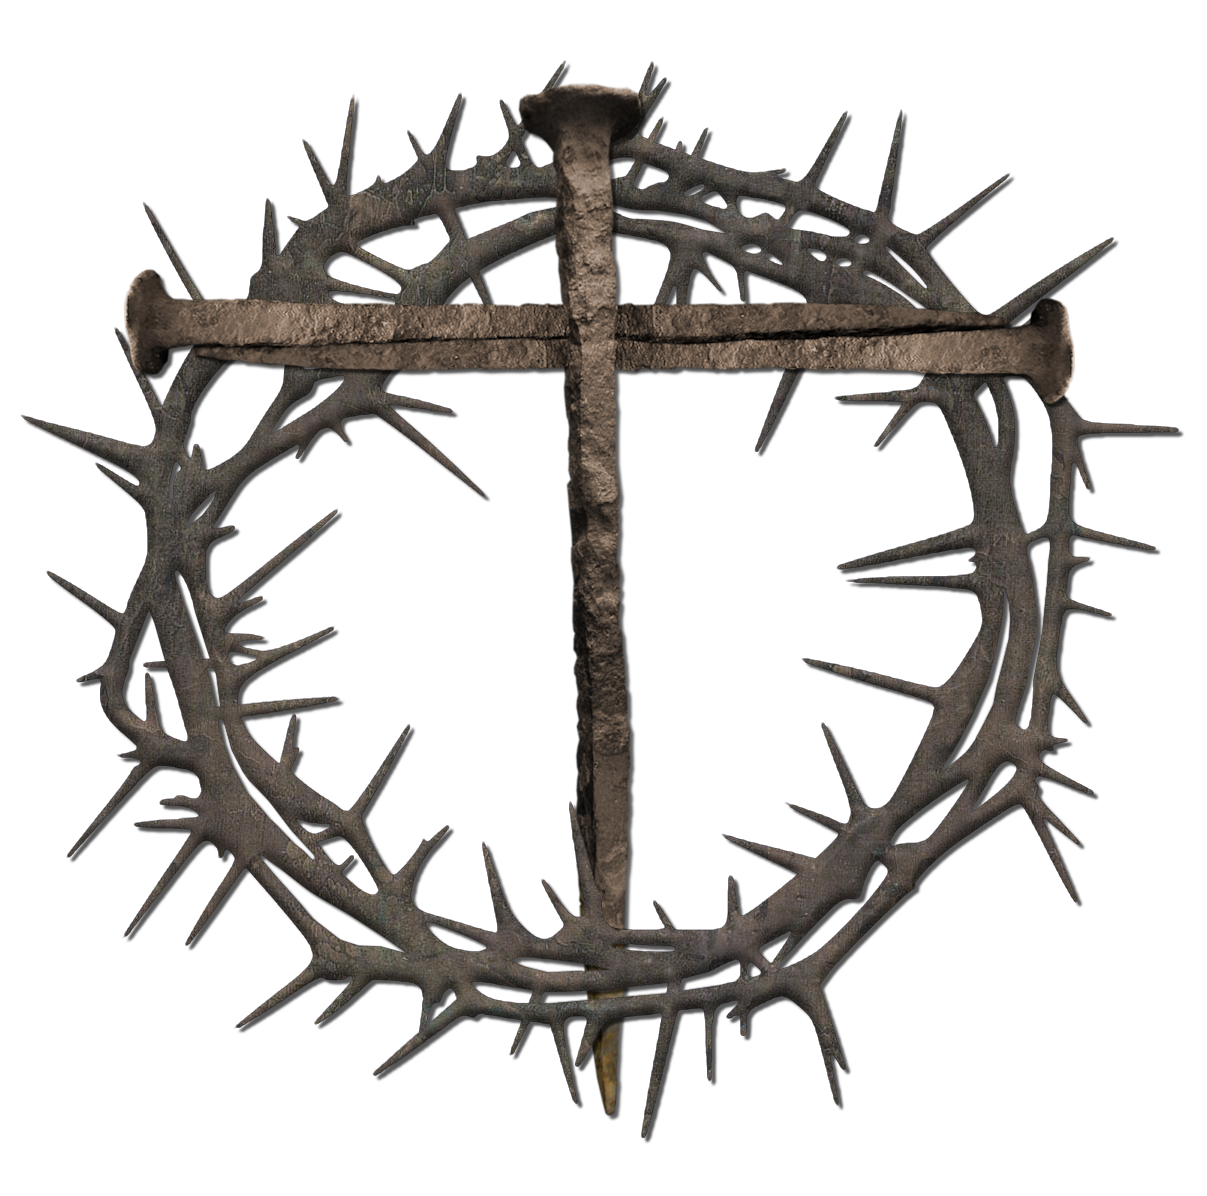 crown of thorns crown png file bing images pictures #36026